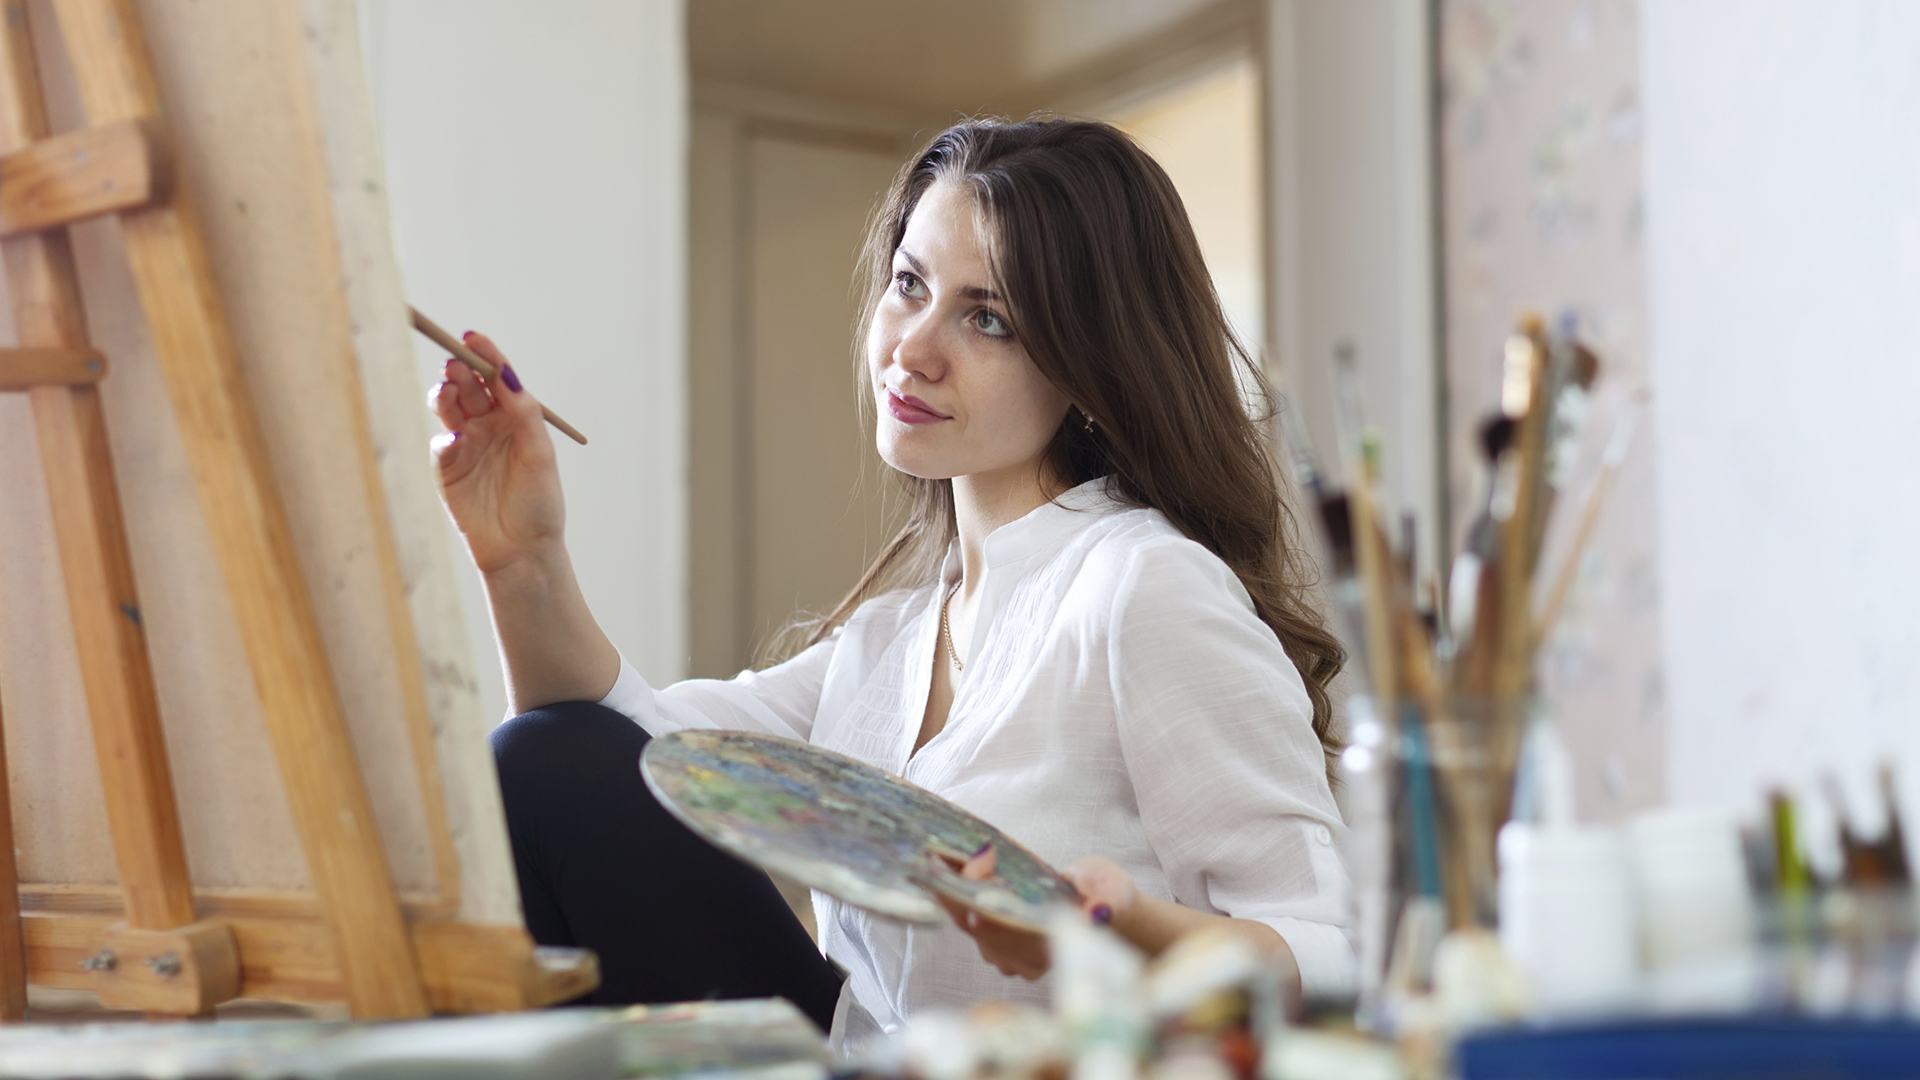 Woman painting on canvas | Sheknows.com